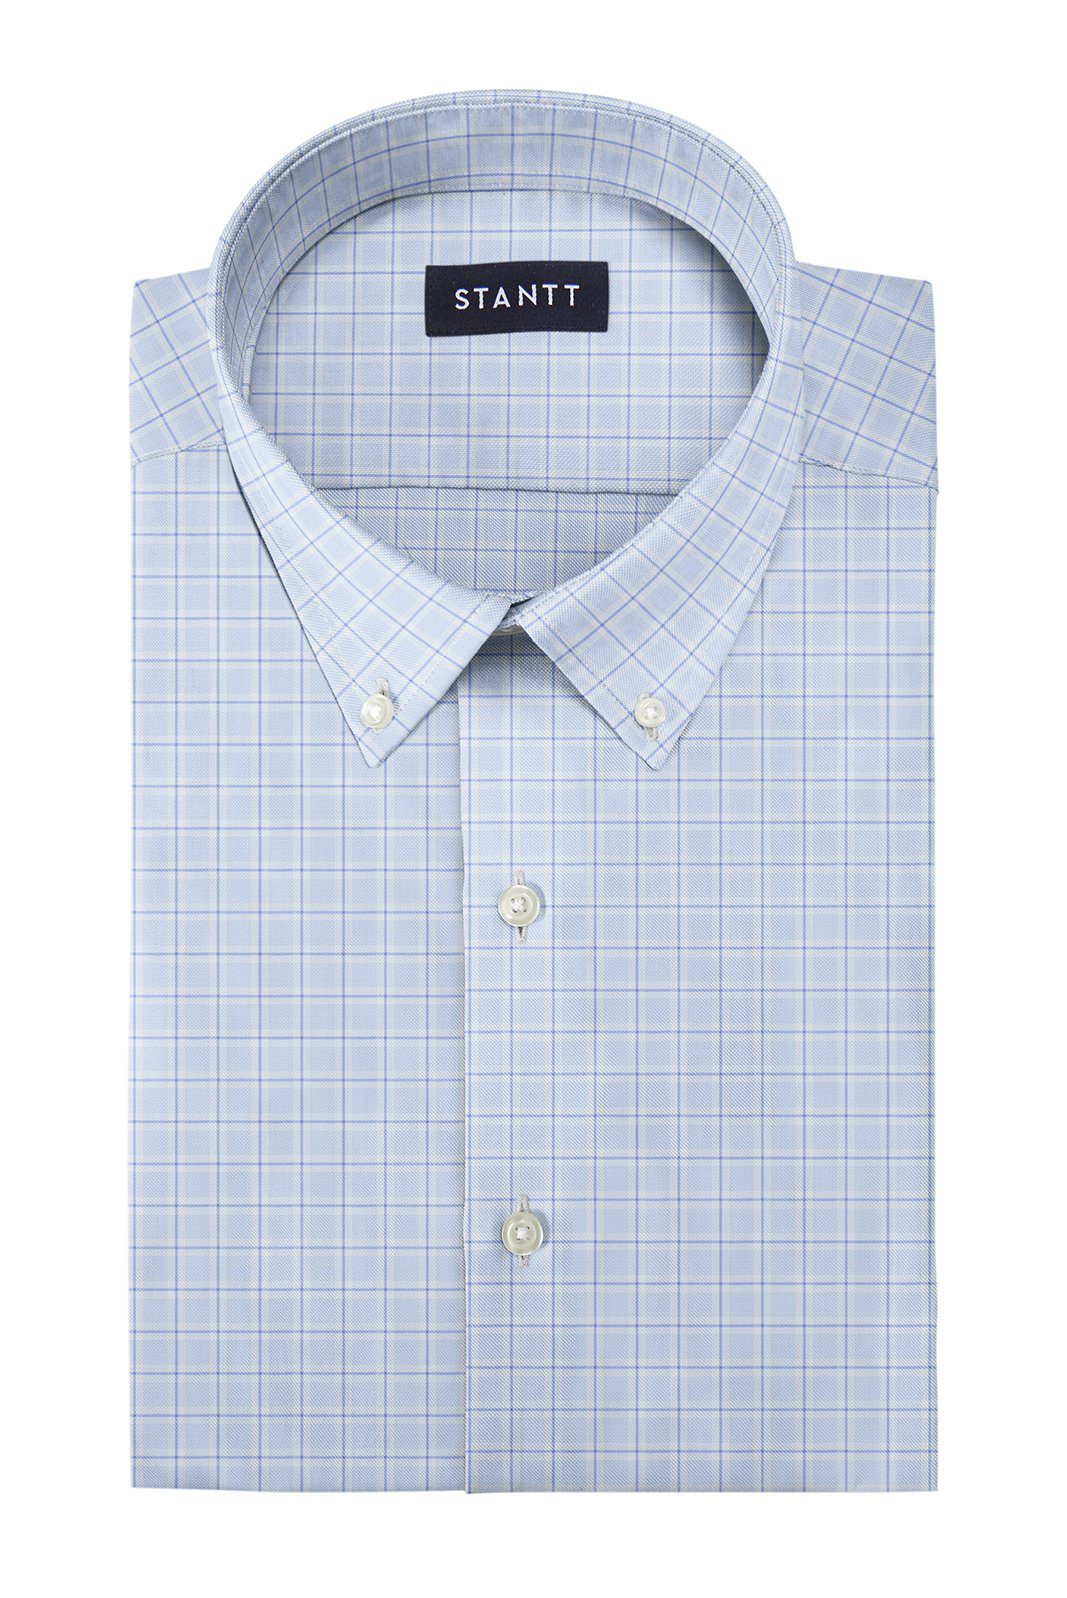 Matrix Blue on Blue Dress Check: Button-Down Collar, Barrel Cuff